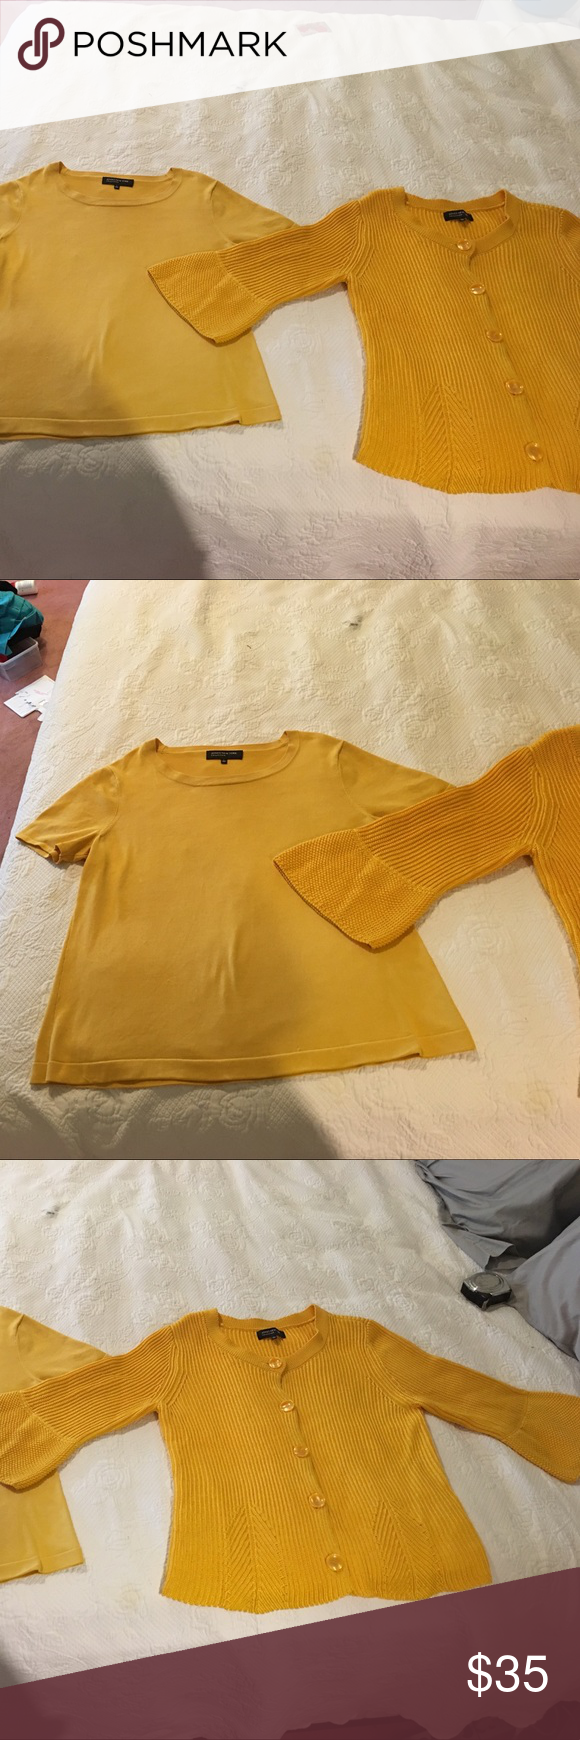 Yellow Sweater Set By Jones New York COLLECTION